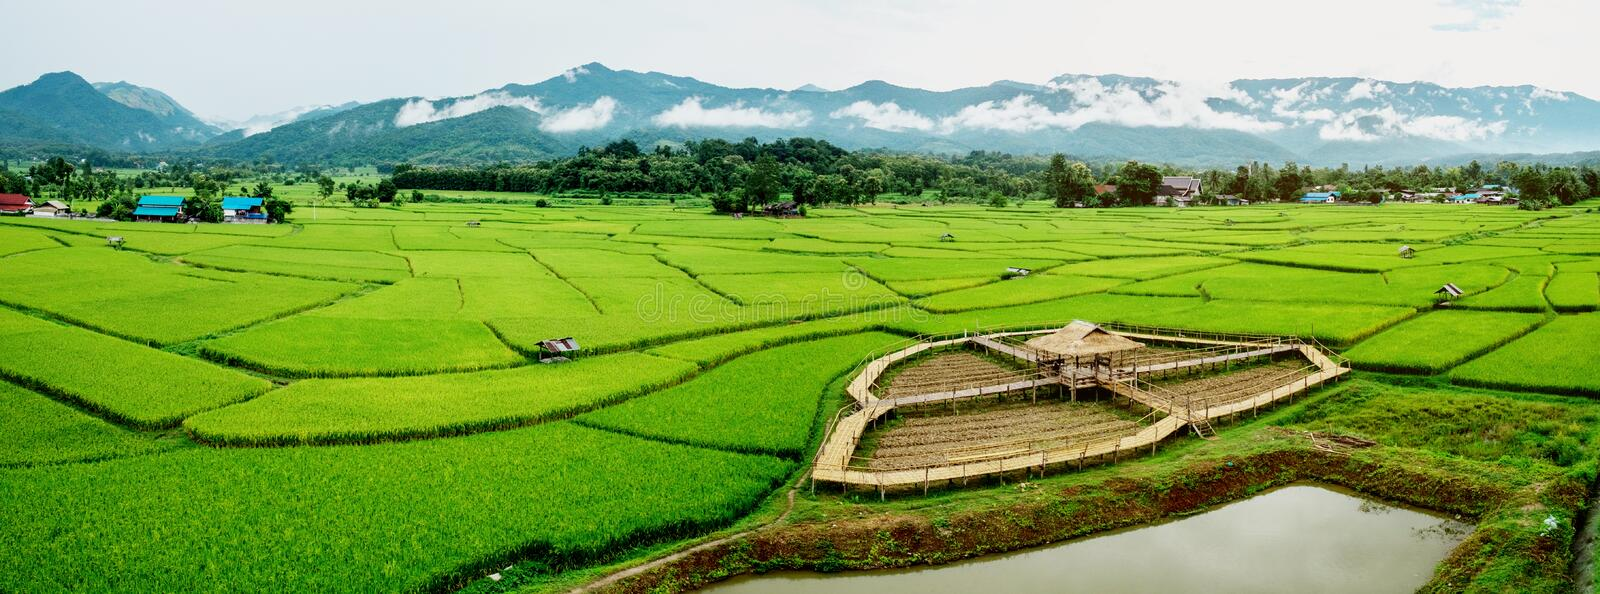 Fields in Nan, Thailand Panorama image.  royalty free stock photos